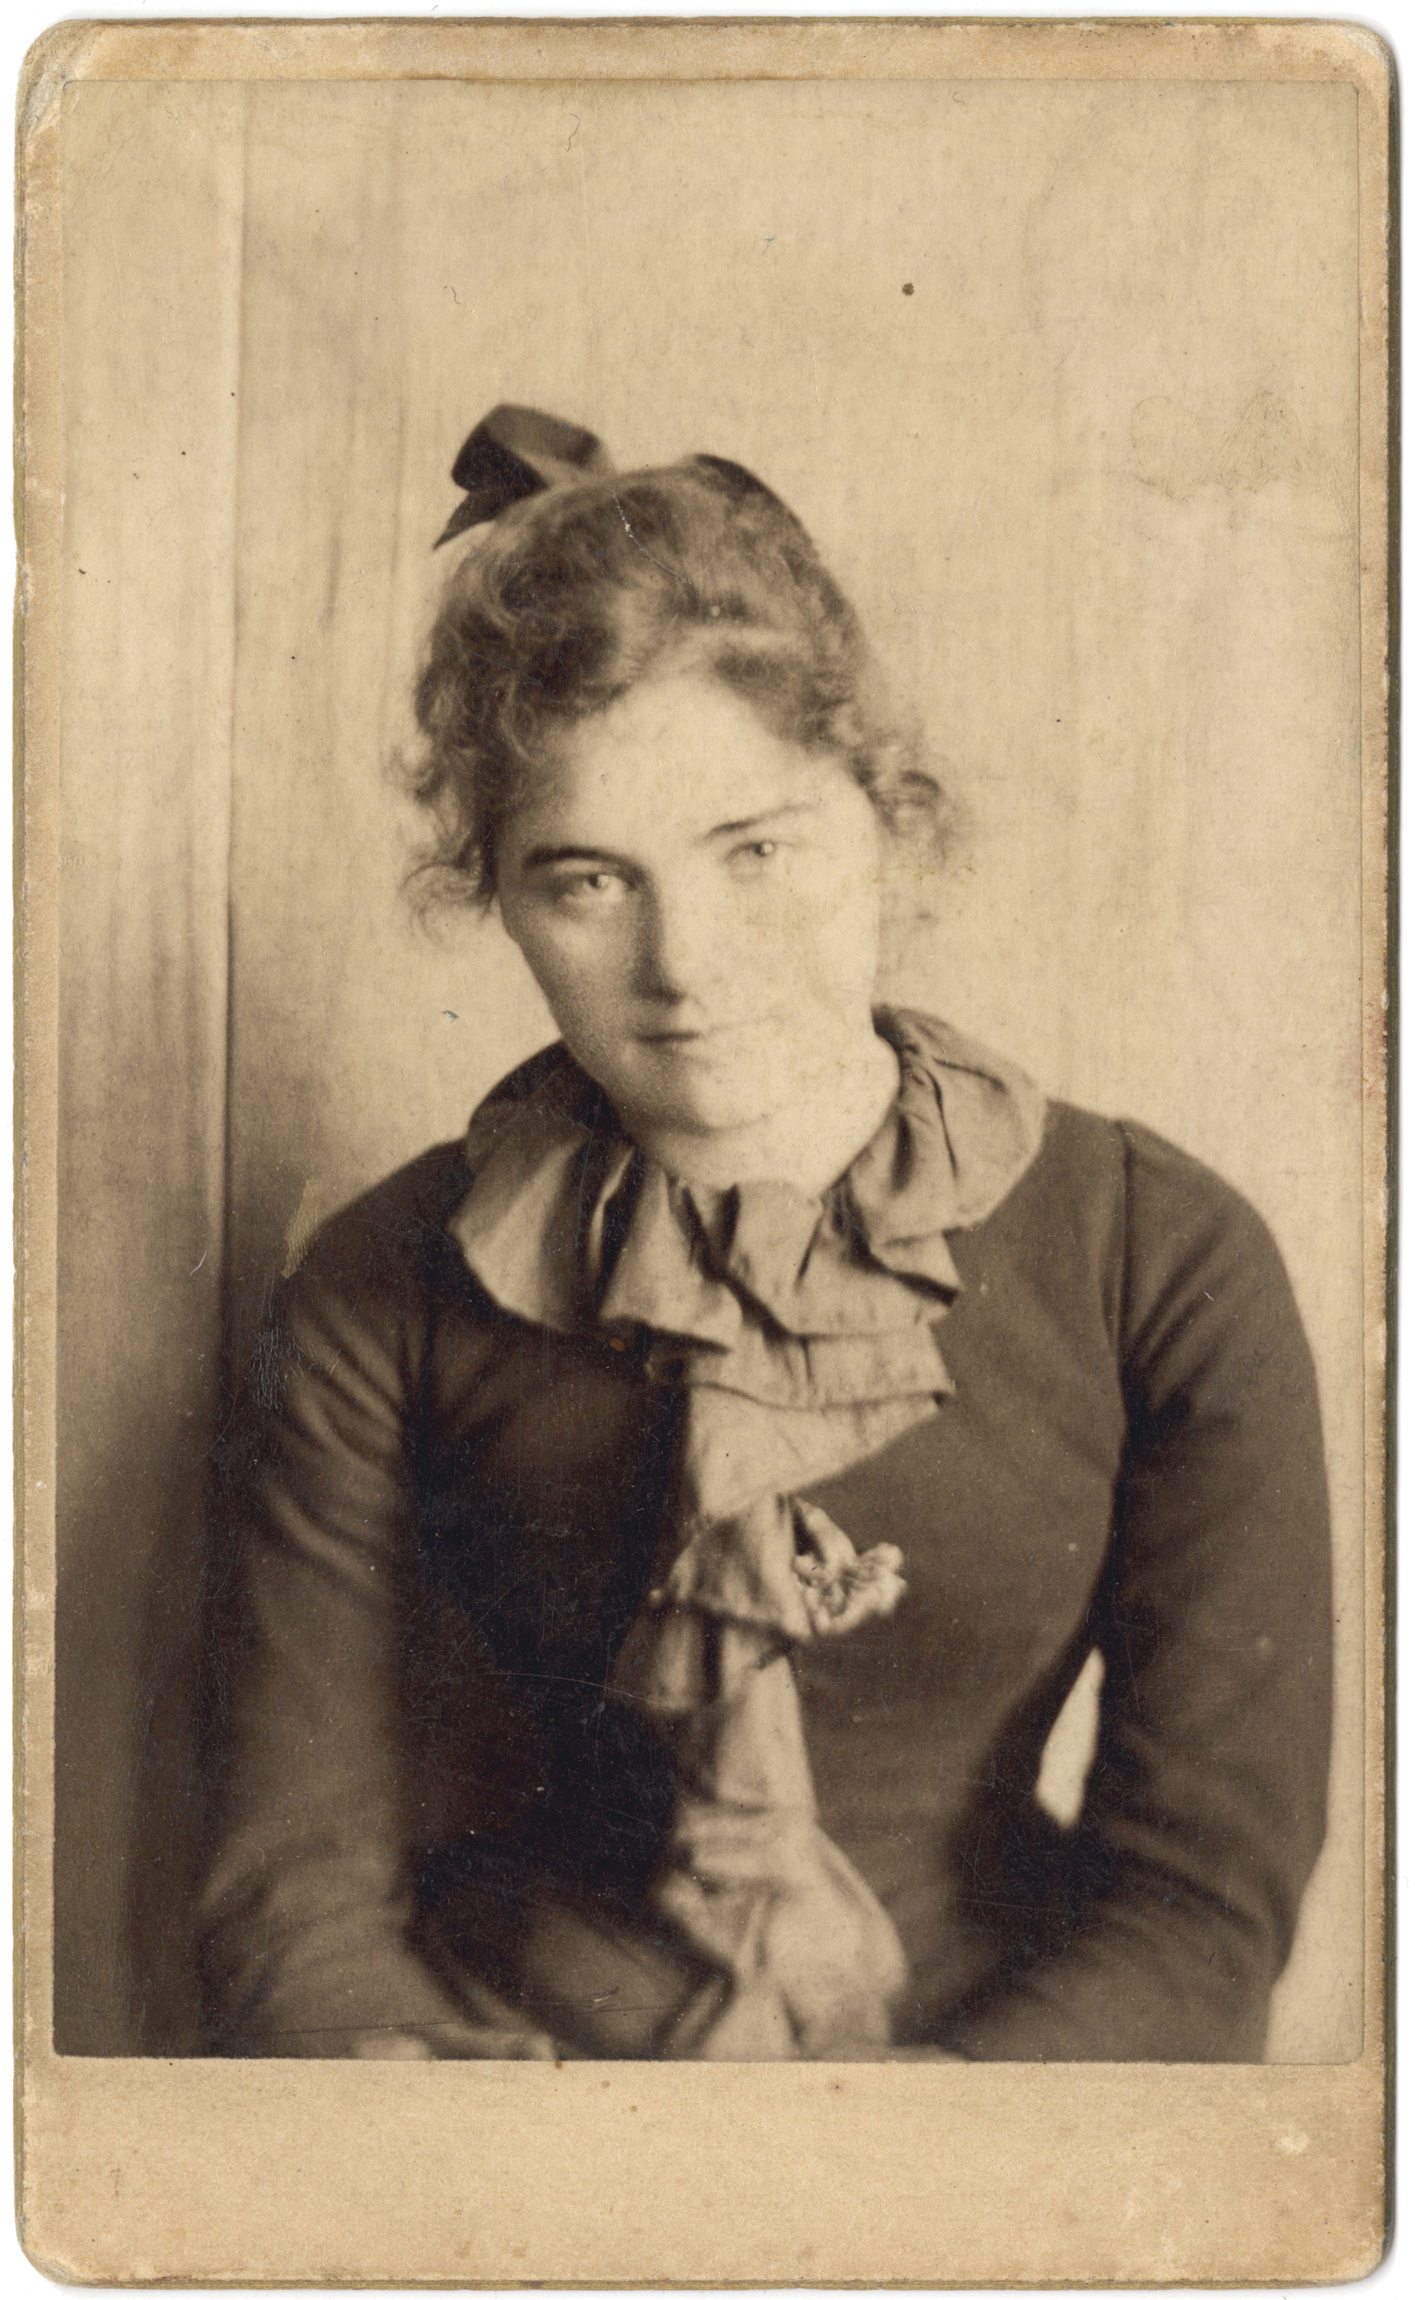 Emily Carr in San Francisco, age 21 or 22, c 1893, courtesy of the Royal BC Museum, BC Archives.